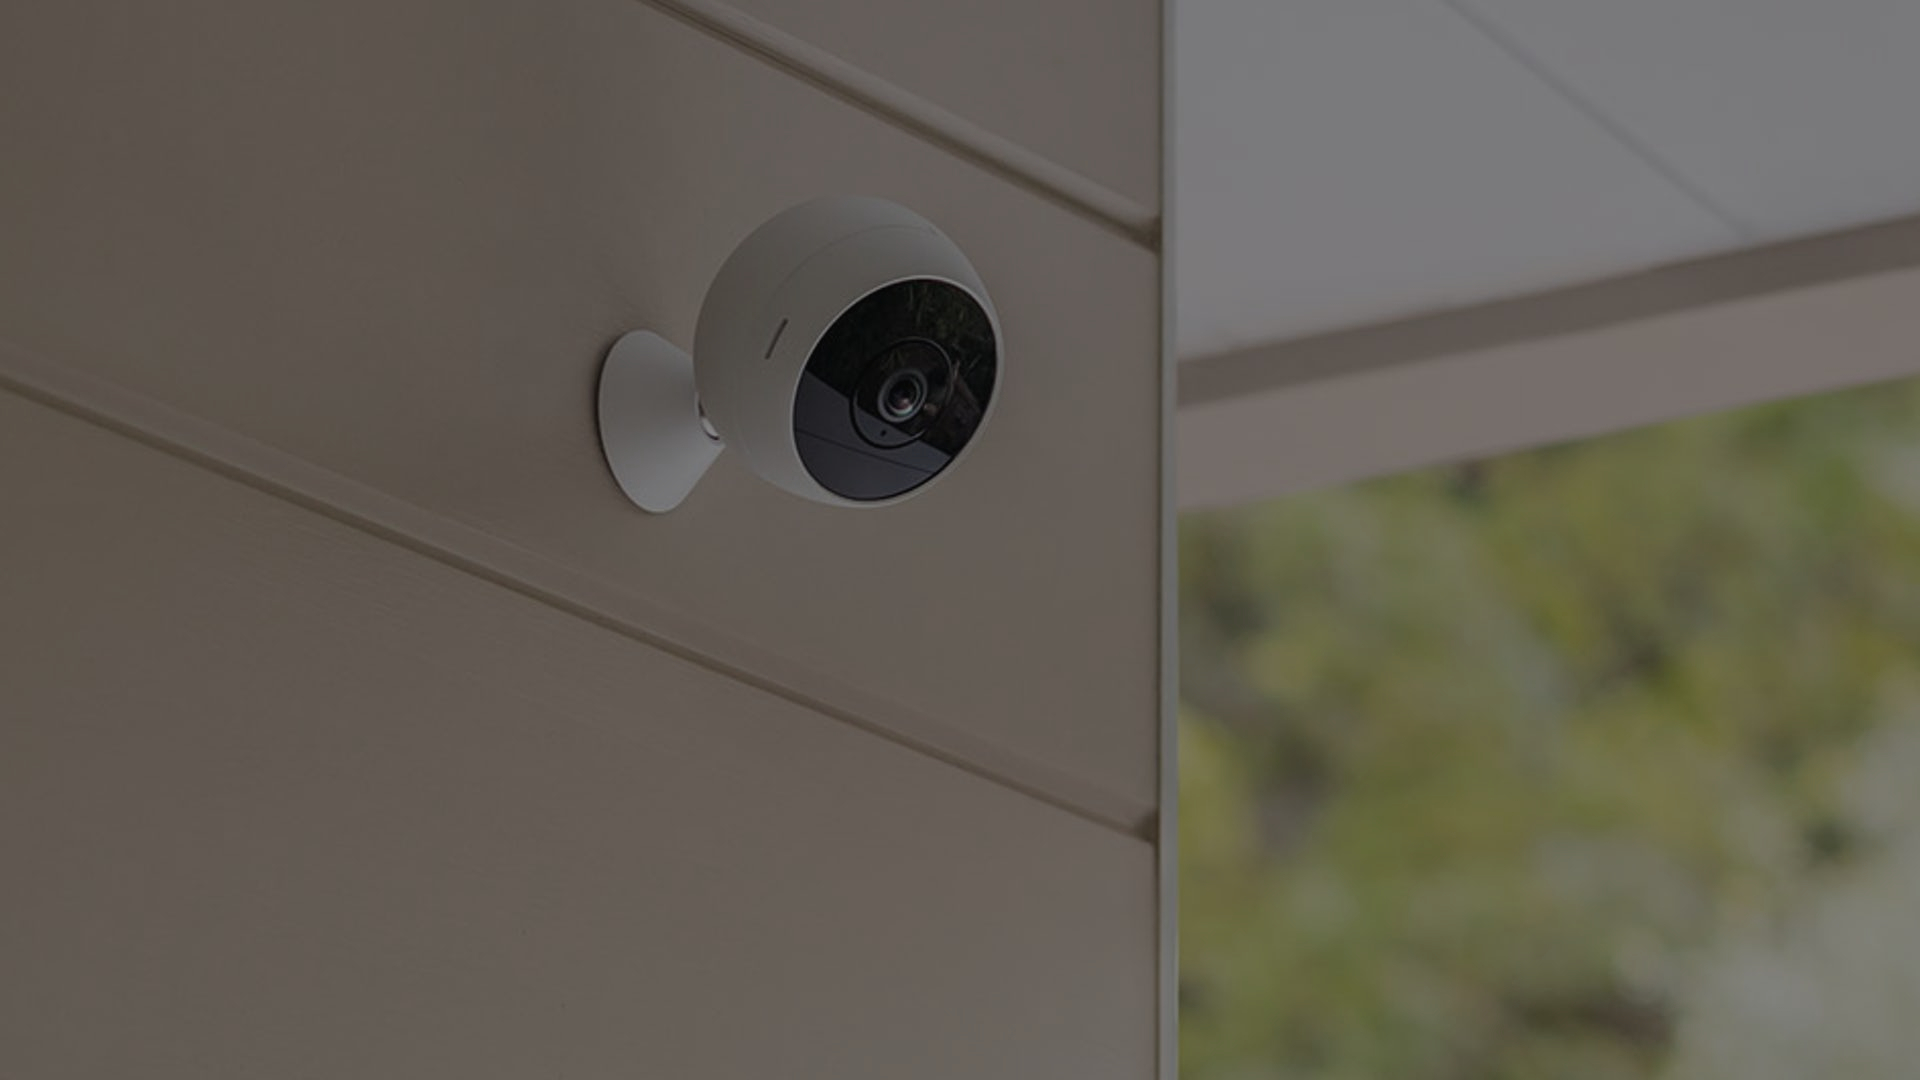 Best Light Bulb Security Camera Reviews